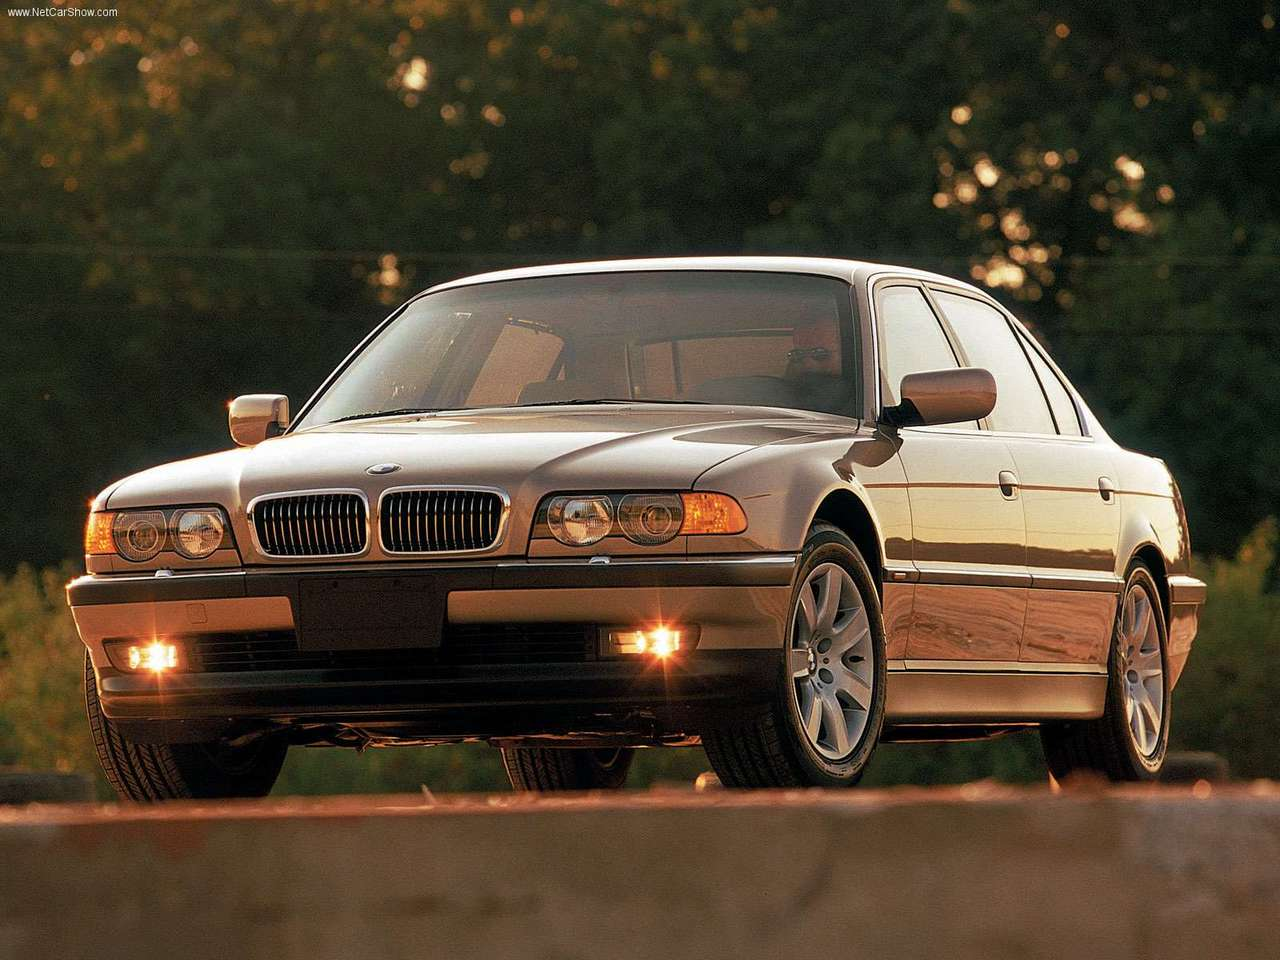 BMW 7 series 725tds 2000 photo - 2